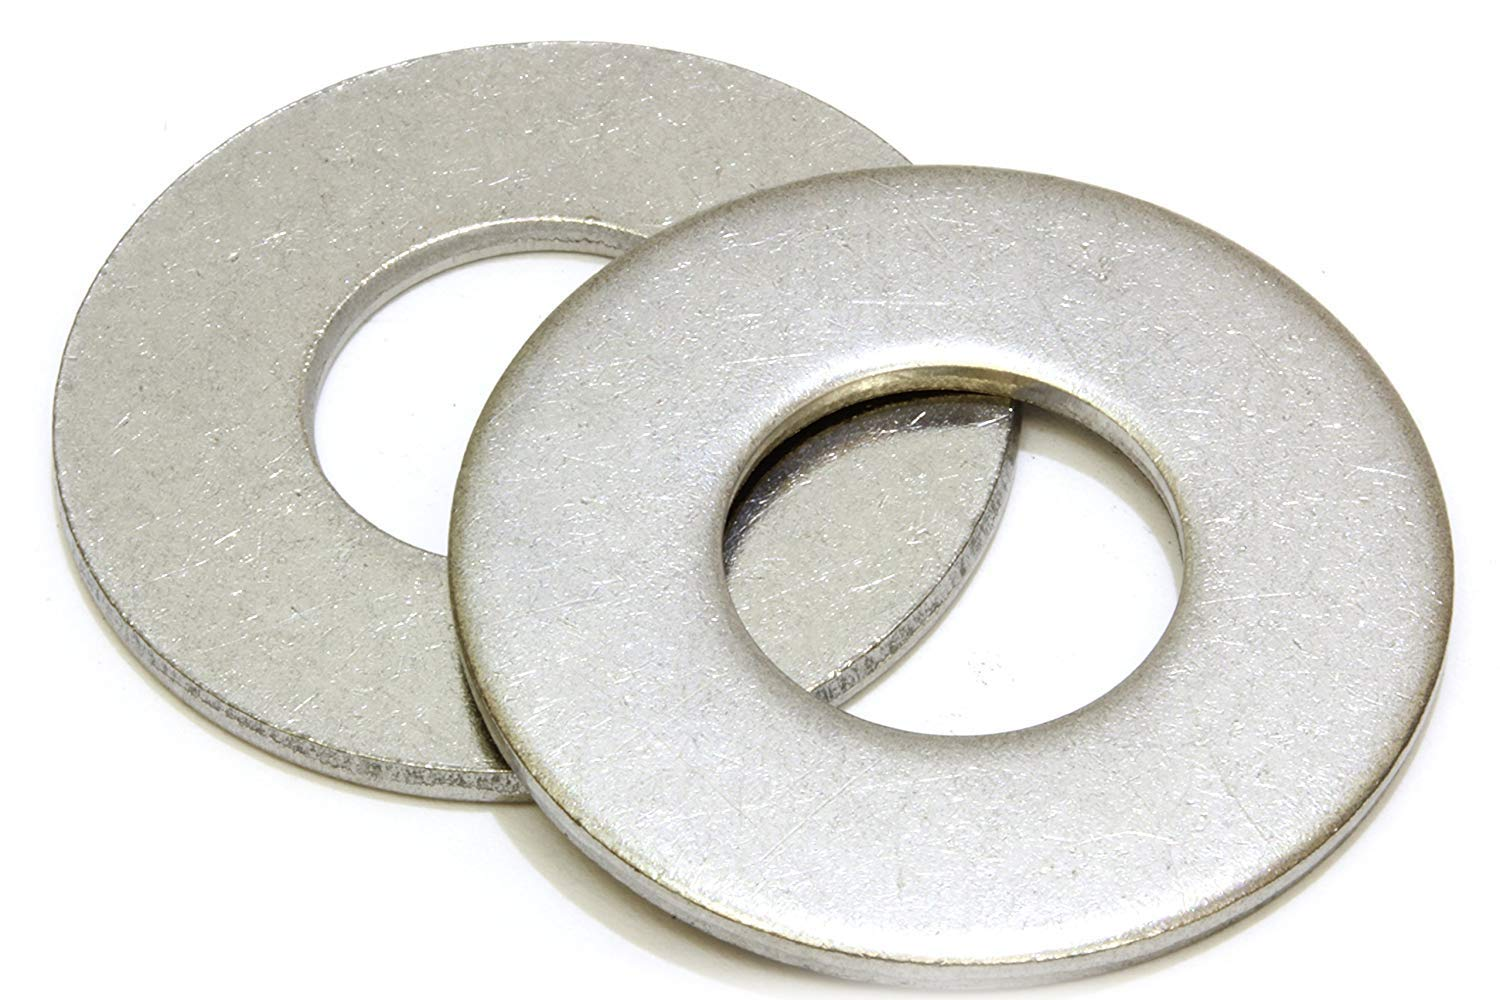 "5/16"" Stainless Flat Washer, 3/4"" Outside Diameter (100 Pack) - Choose Size, by Bolt Dropper, 18-8 (304) Stainless Steel"